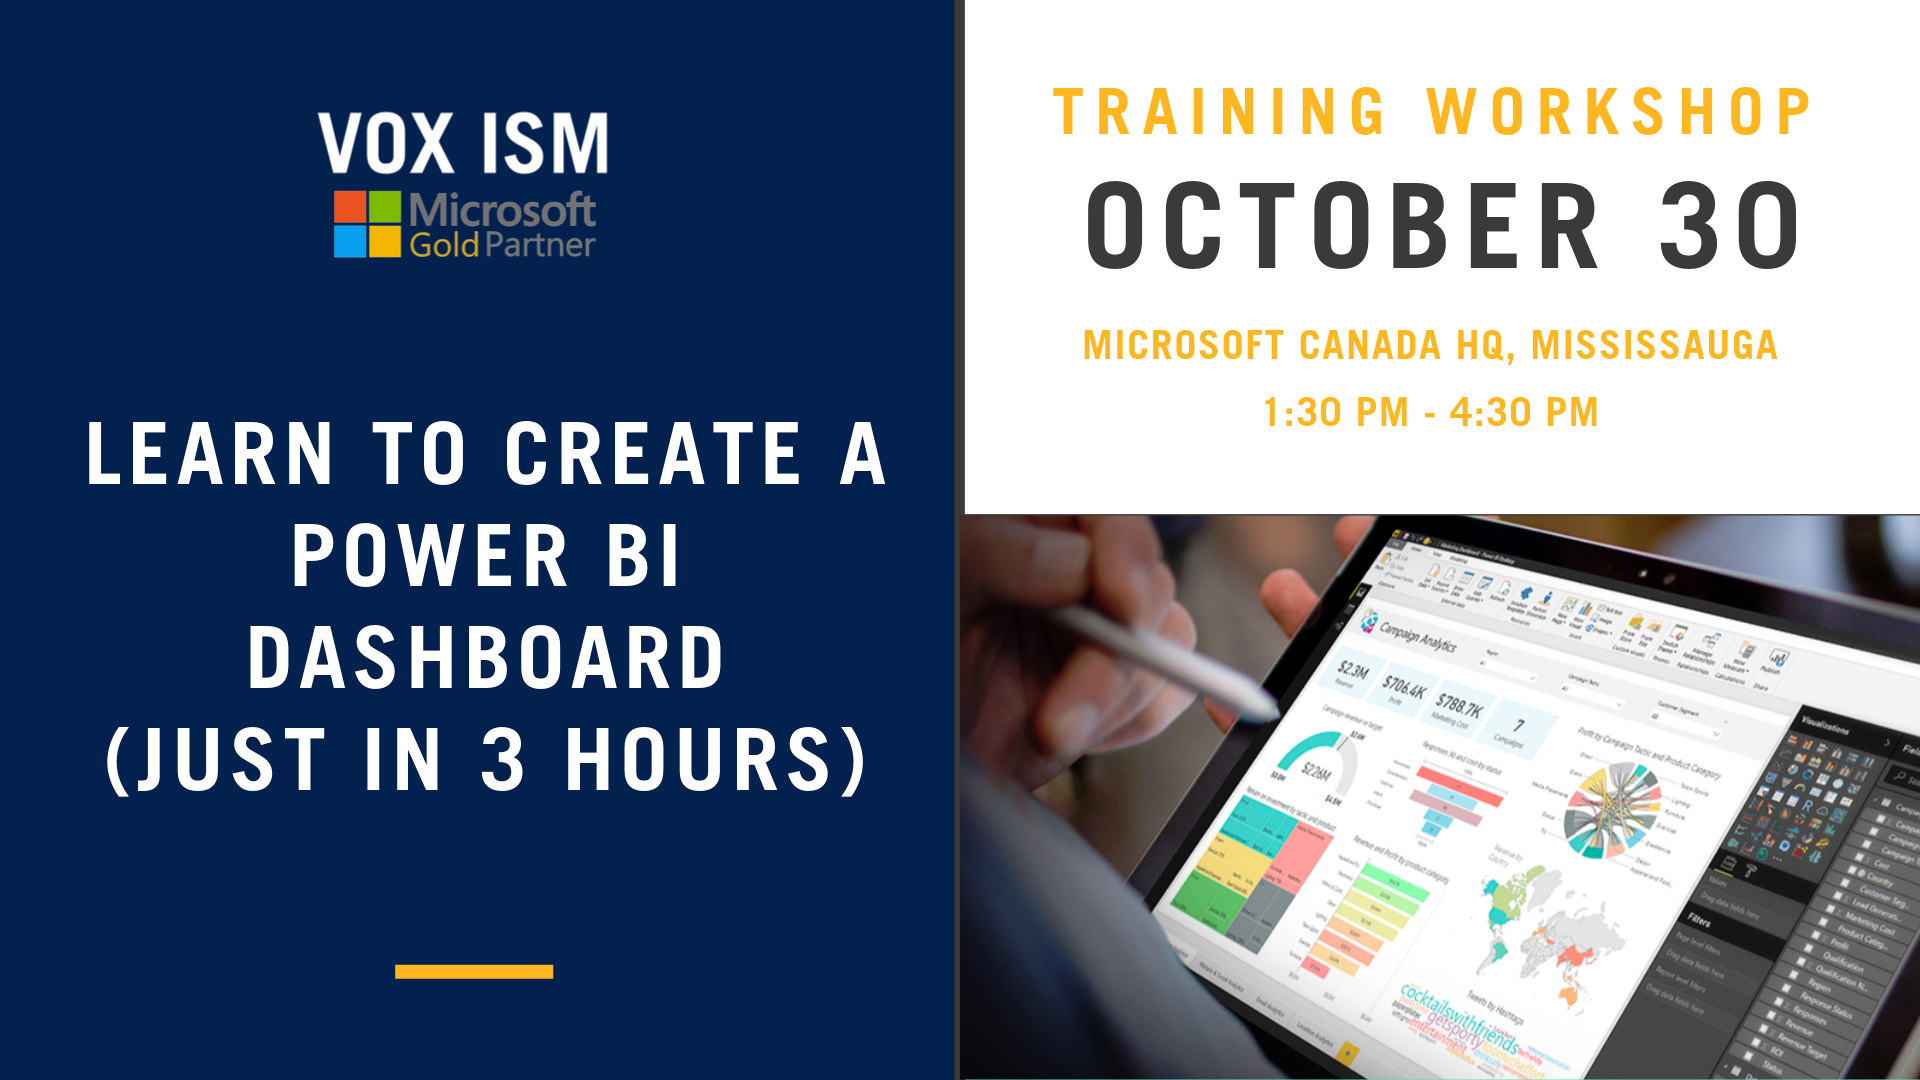 Learn to create Power BI Dashboard (just in 3 hours) – October 30